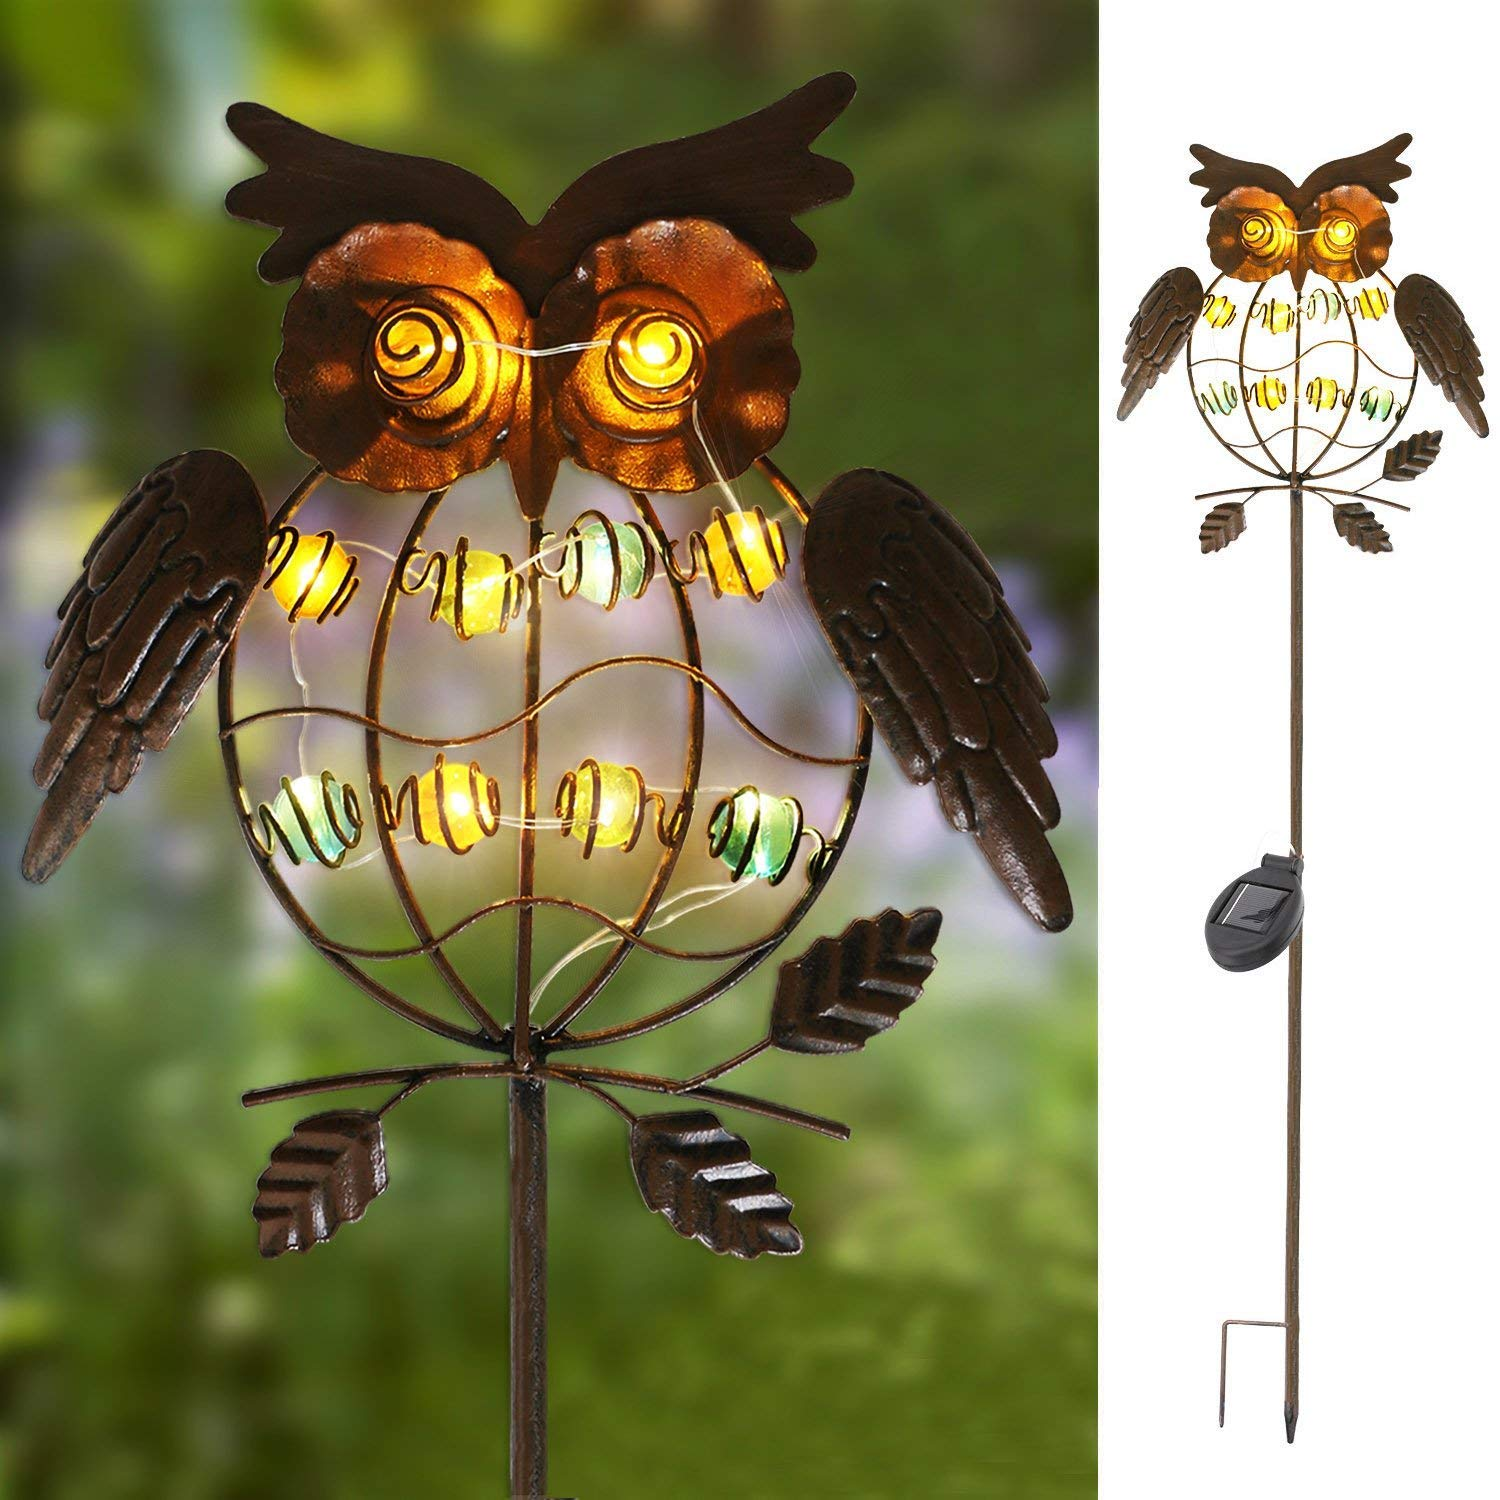 TAKE ME Garden Solar Lights Outdoor,Solar Powered Stake Lights - Metal OWL LED Decorative Garden Lights for Walkway,Pathway,Yard,Lawn (Multicolor) (Multicolor) by TAKE ME